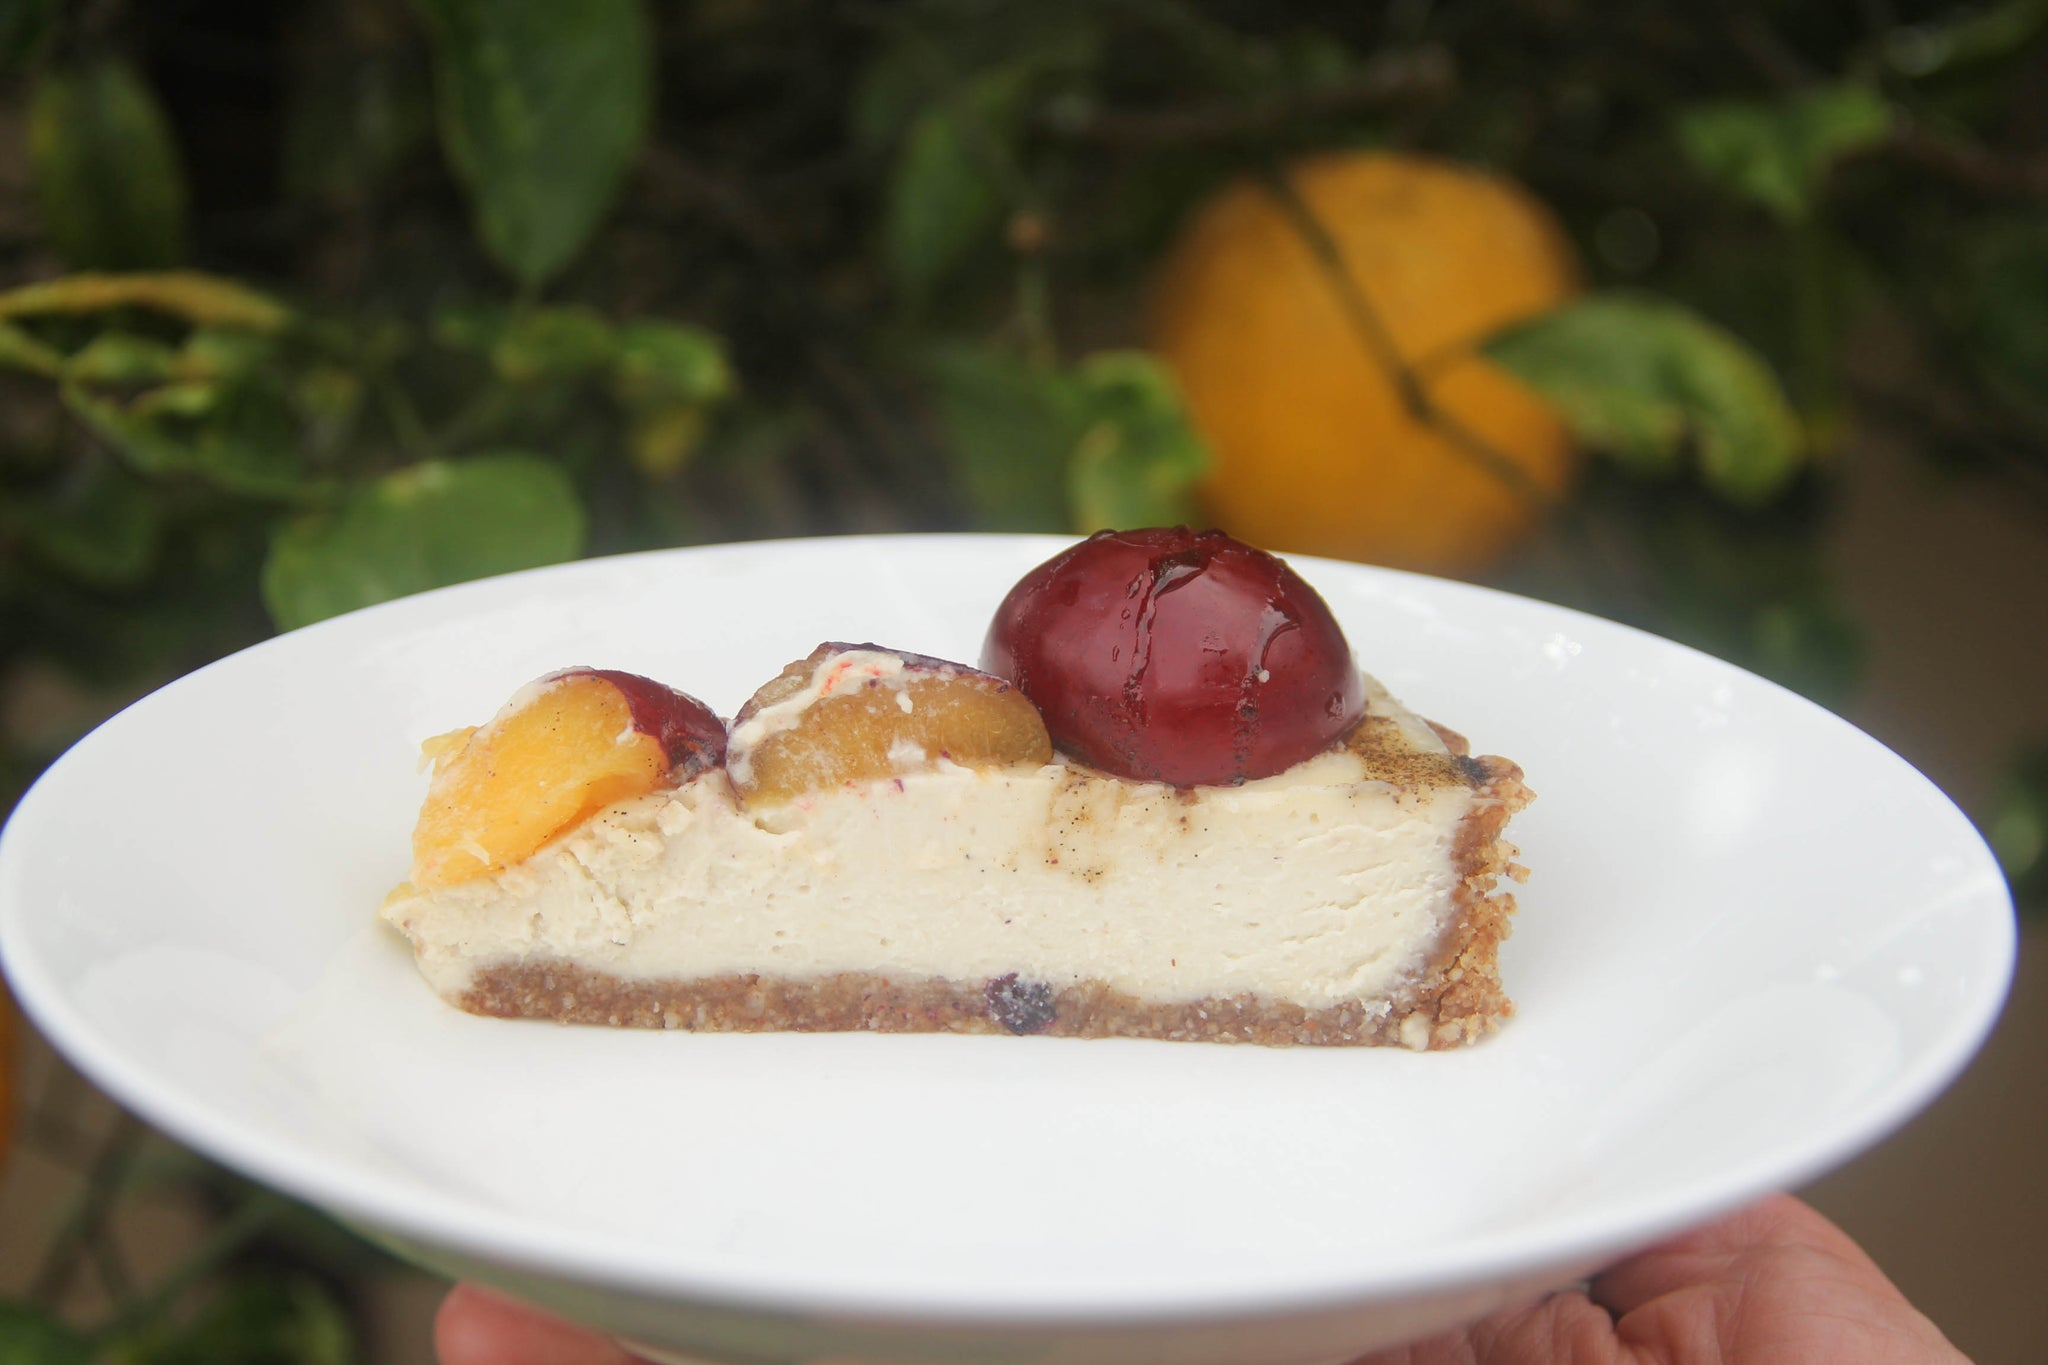 30-minute luscious Fresh Plum Tart #healthy #vegan #plum #tart #recipe #dairyfree #sugarfree #glutenfree #begoodorganics